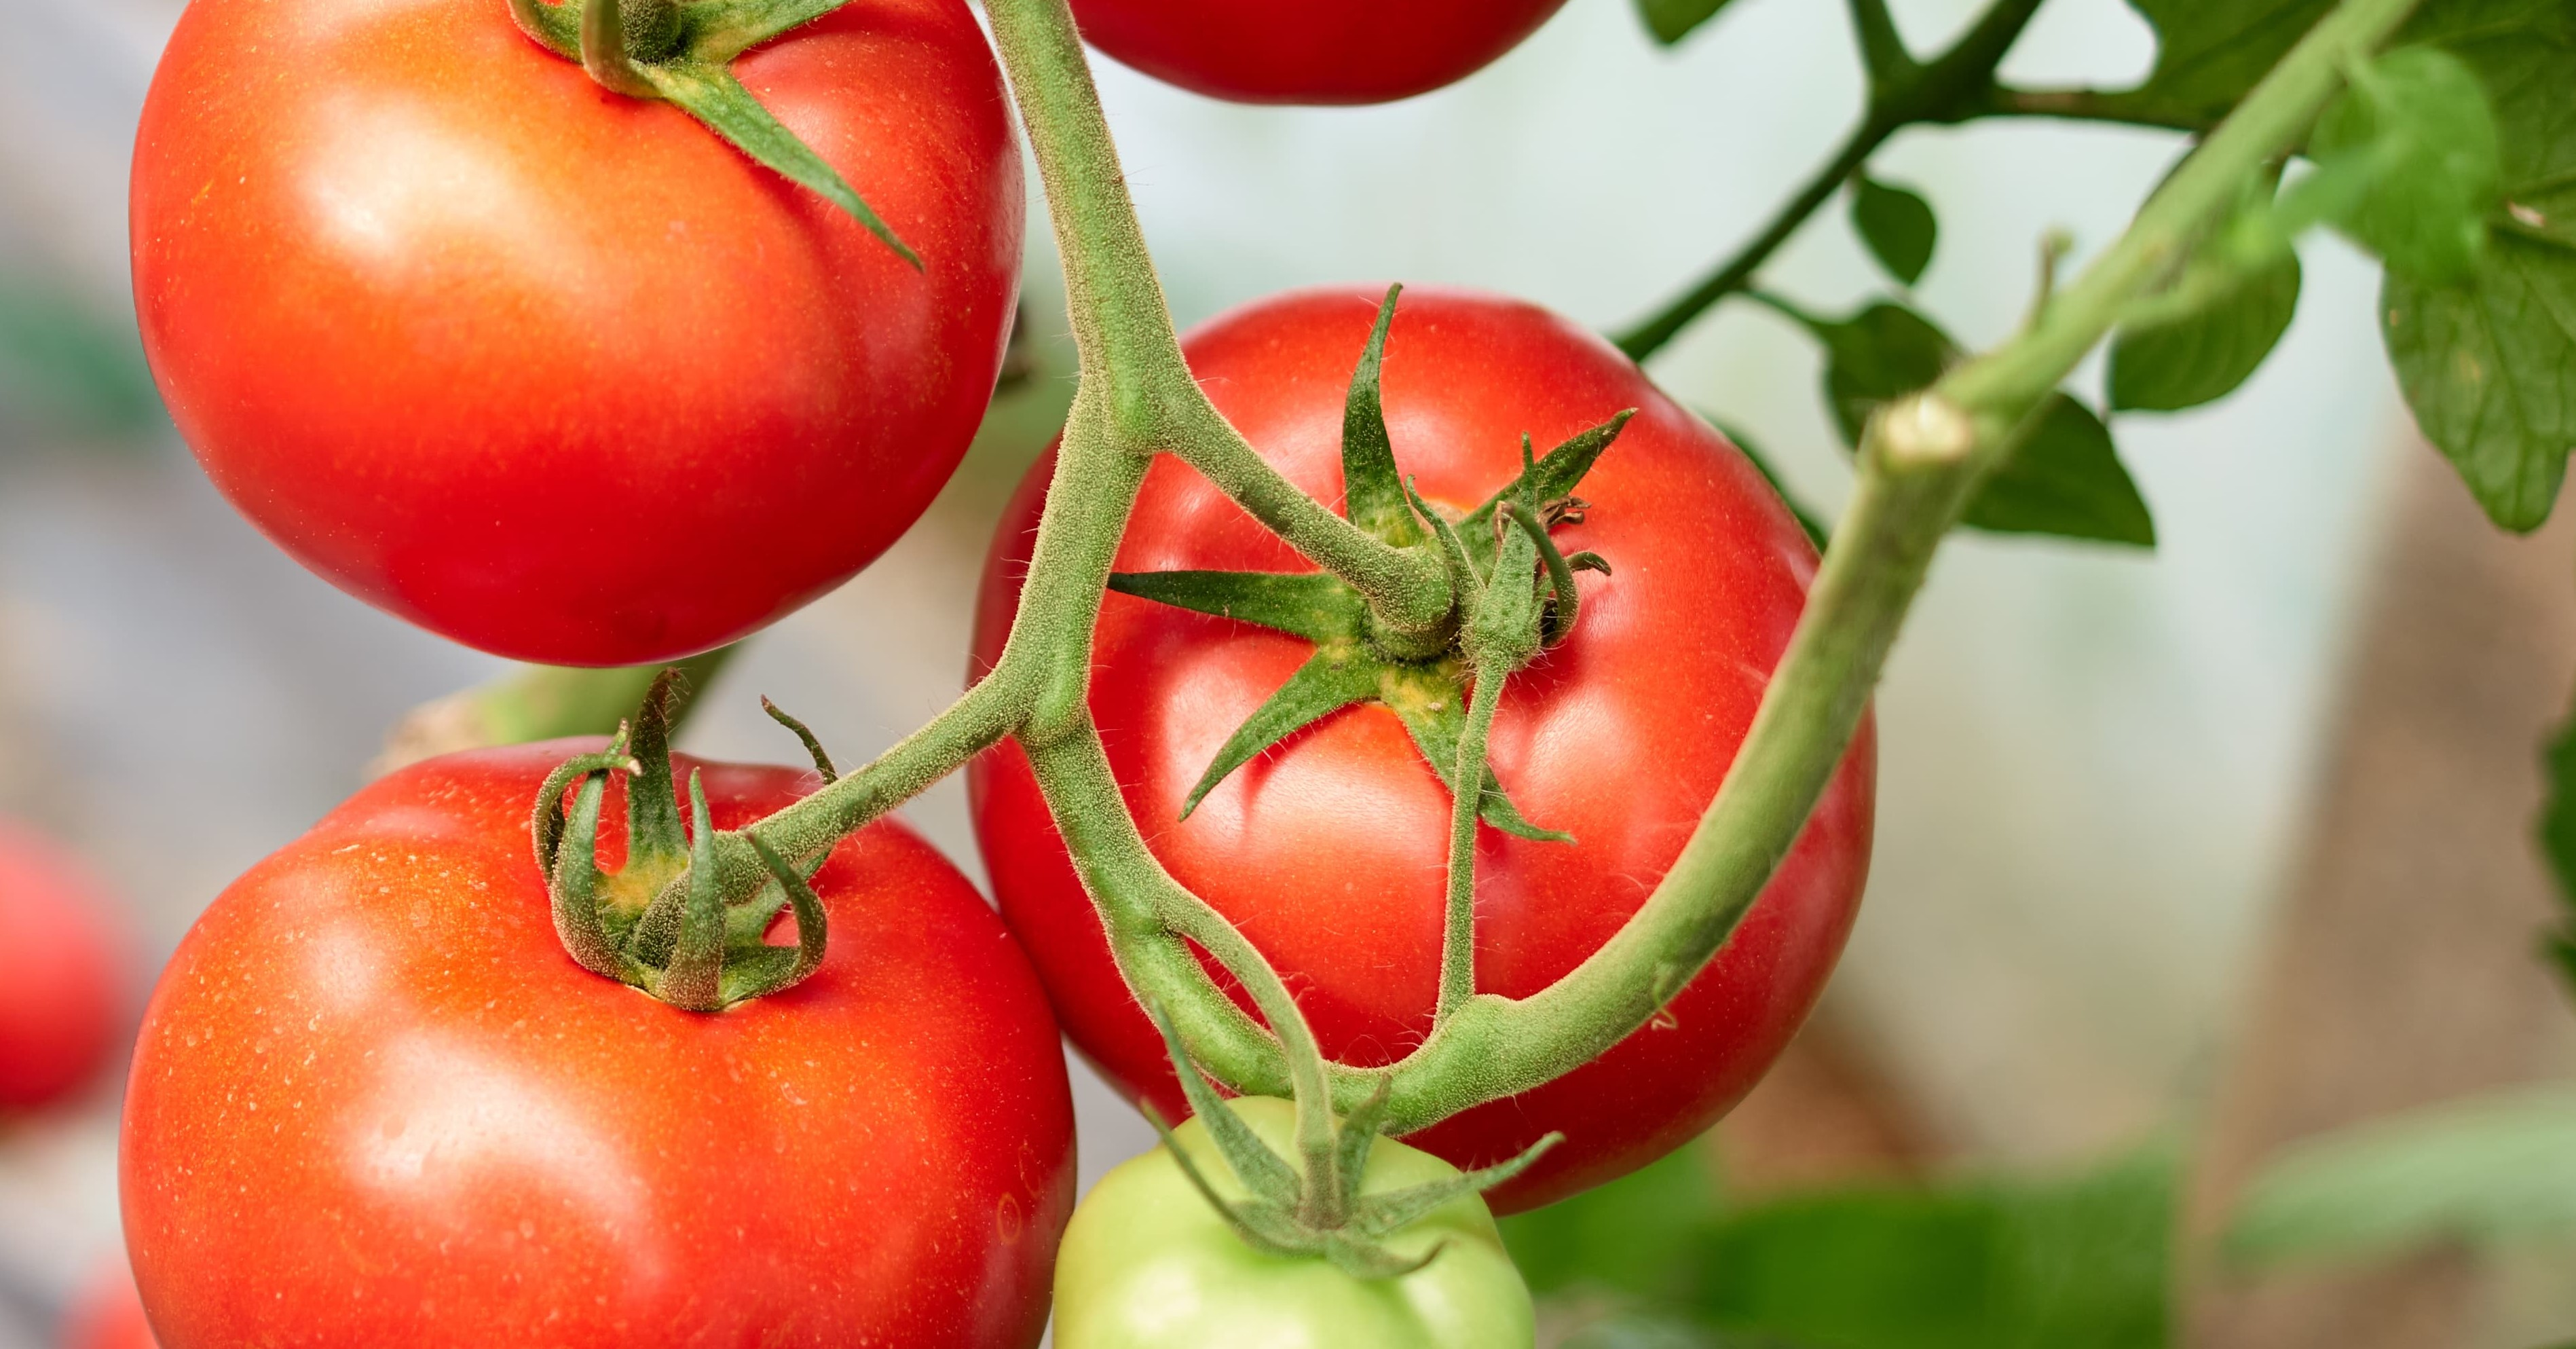 How to prepare nursery for tomato cultivation